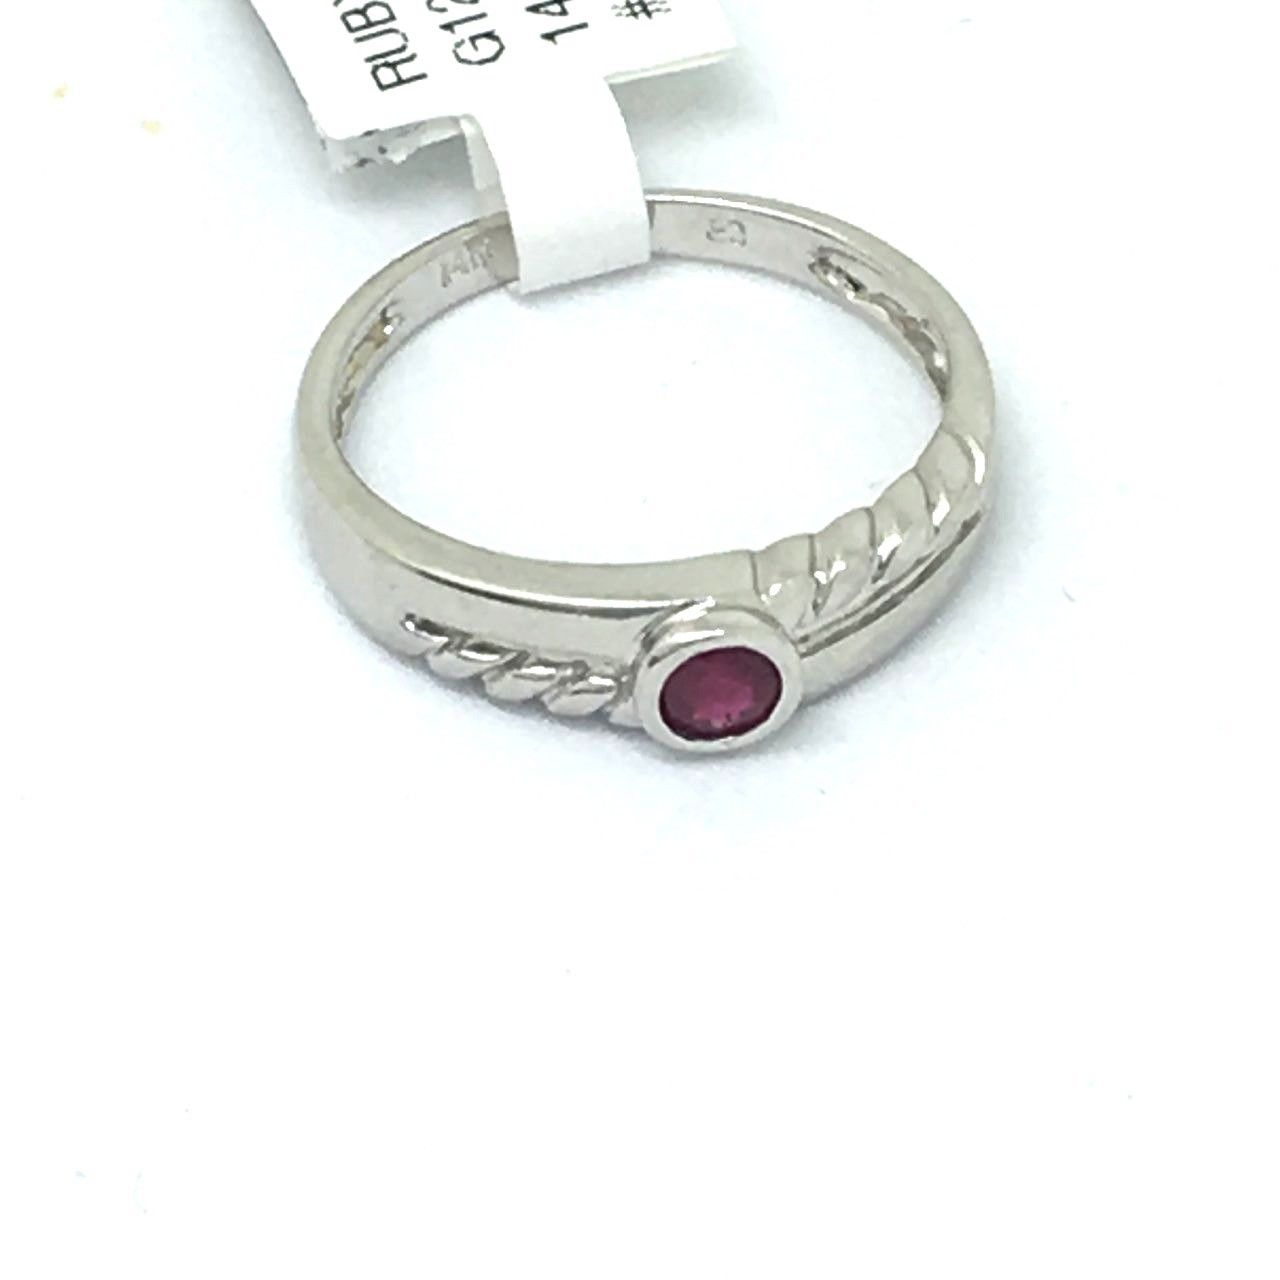 14K white gold and Genuine Ruby Ring $400 NWT Size 6 3/4